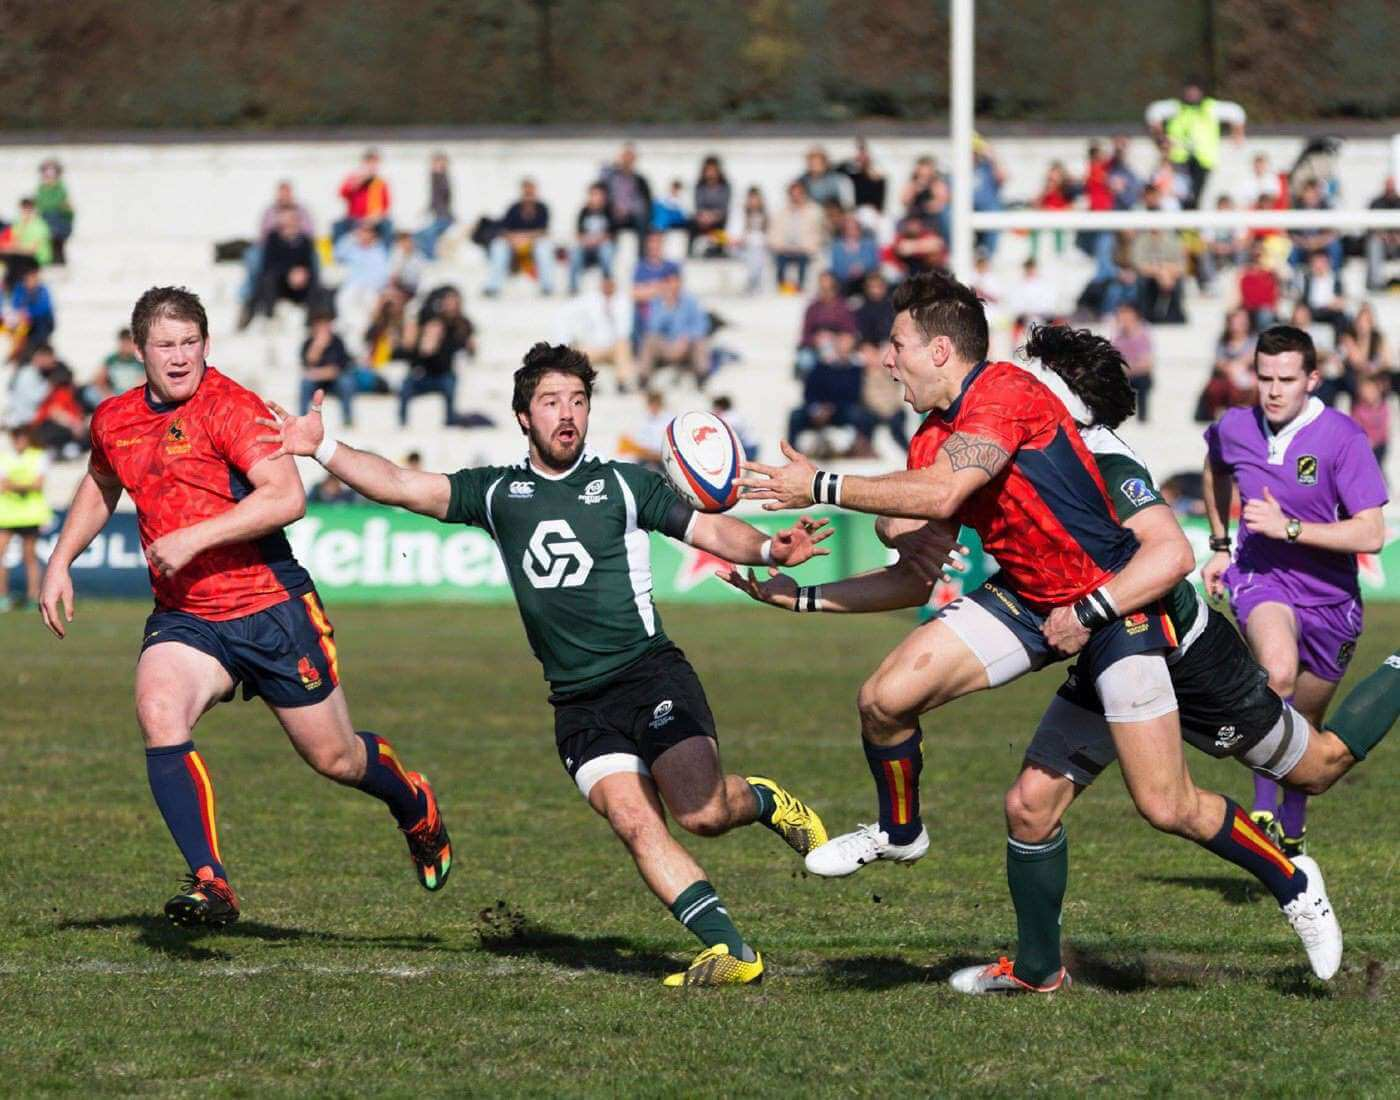 Rugby Union sports